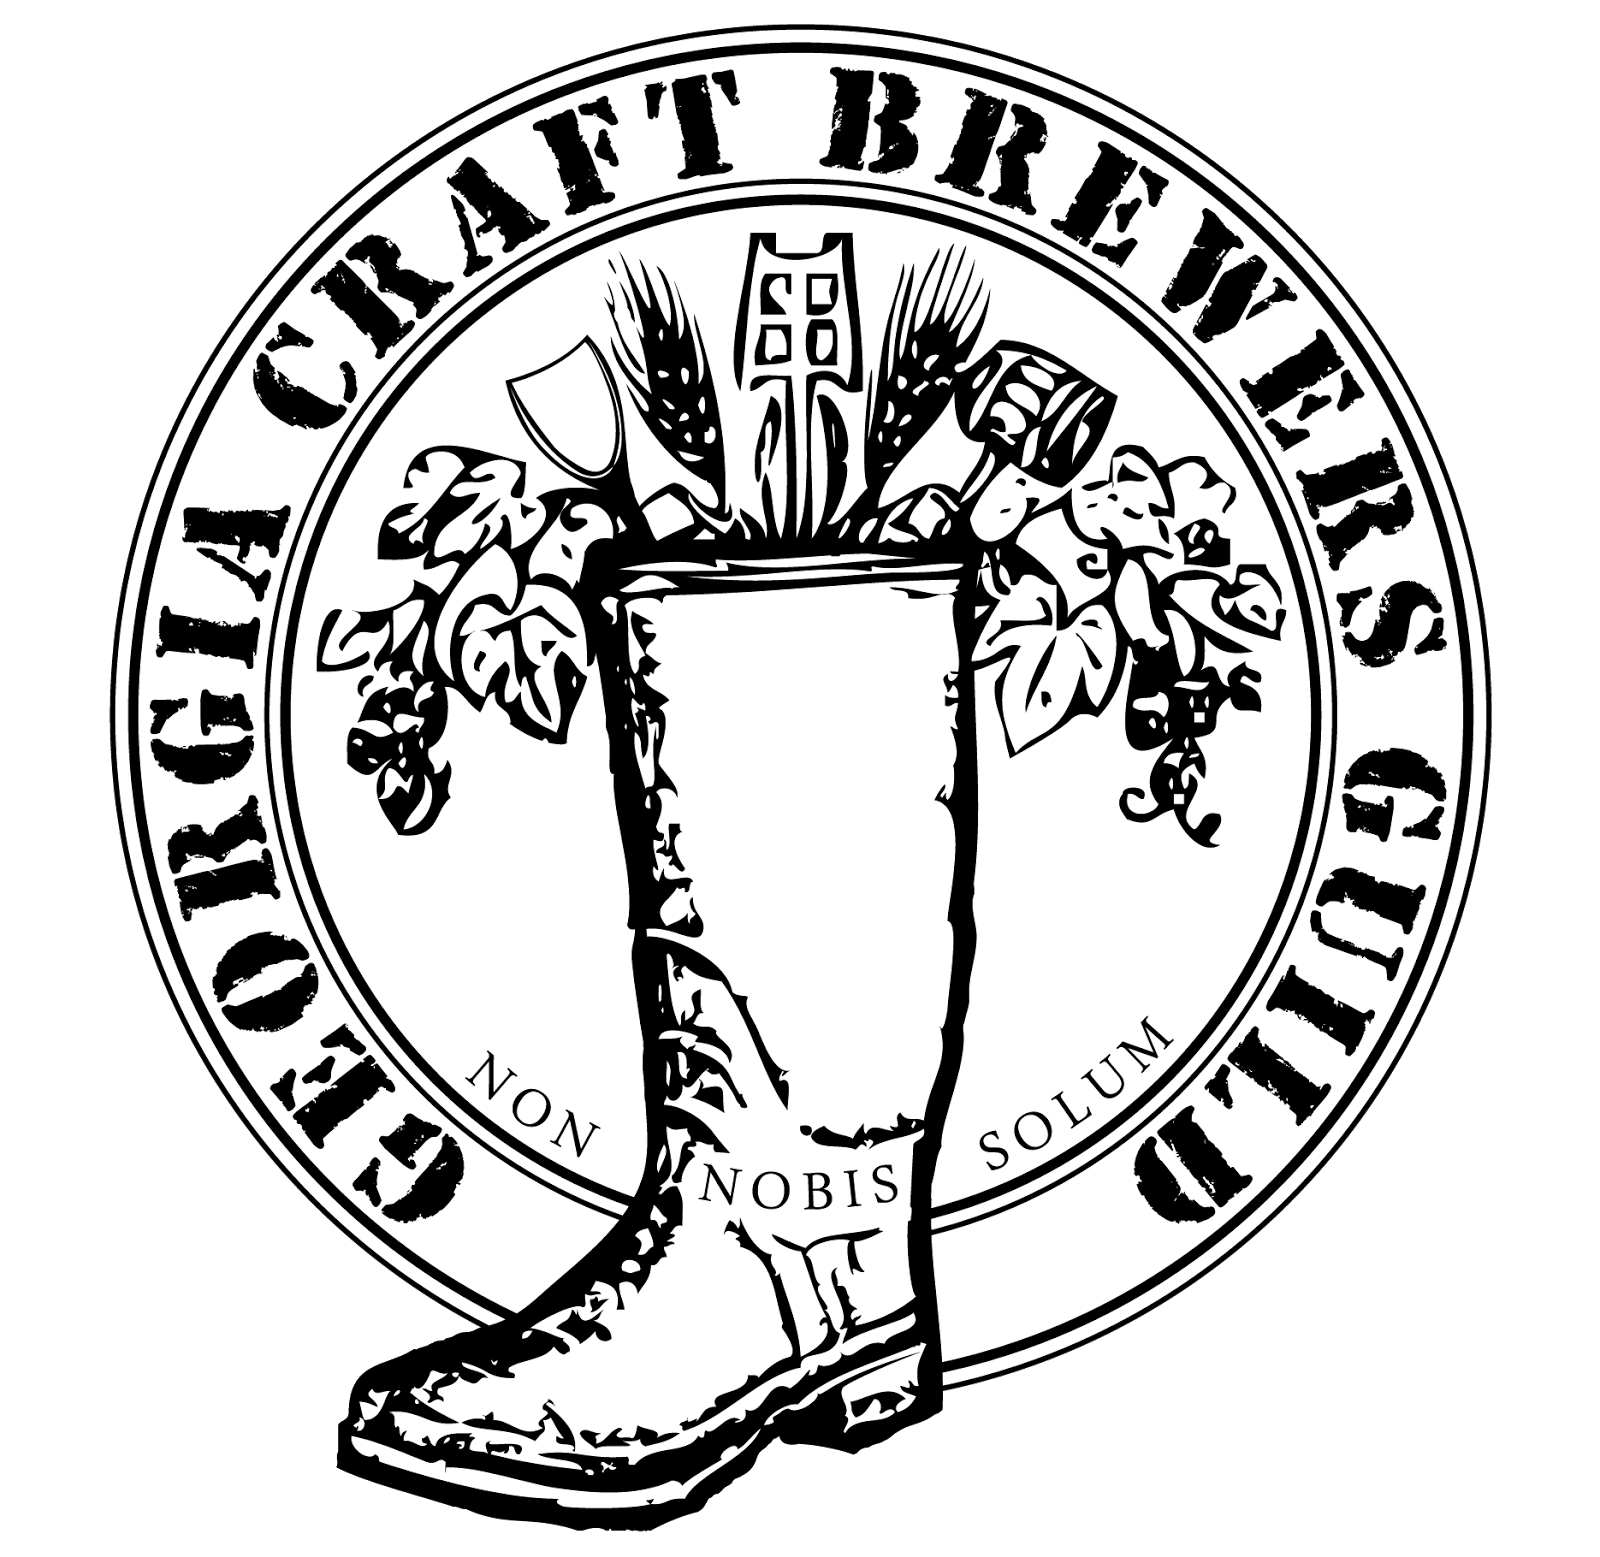 House and senate clipart clipart black and white stock Cruisin' For A Brewsin': Direct Sales from GA Breweries and ... clipart black and white stock